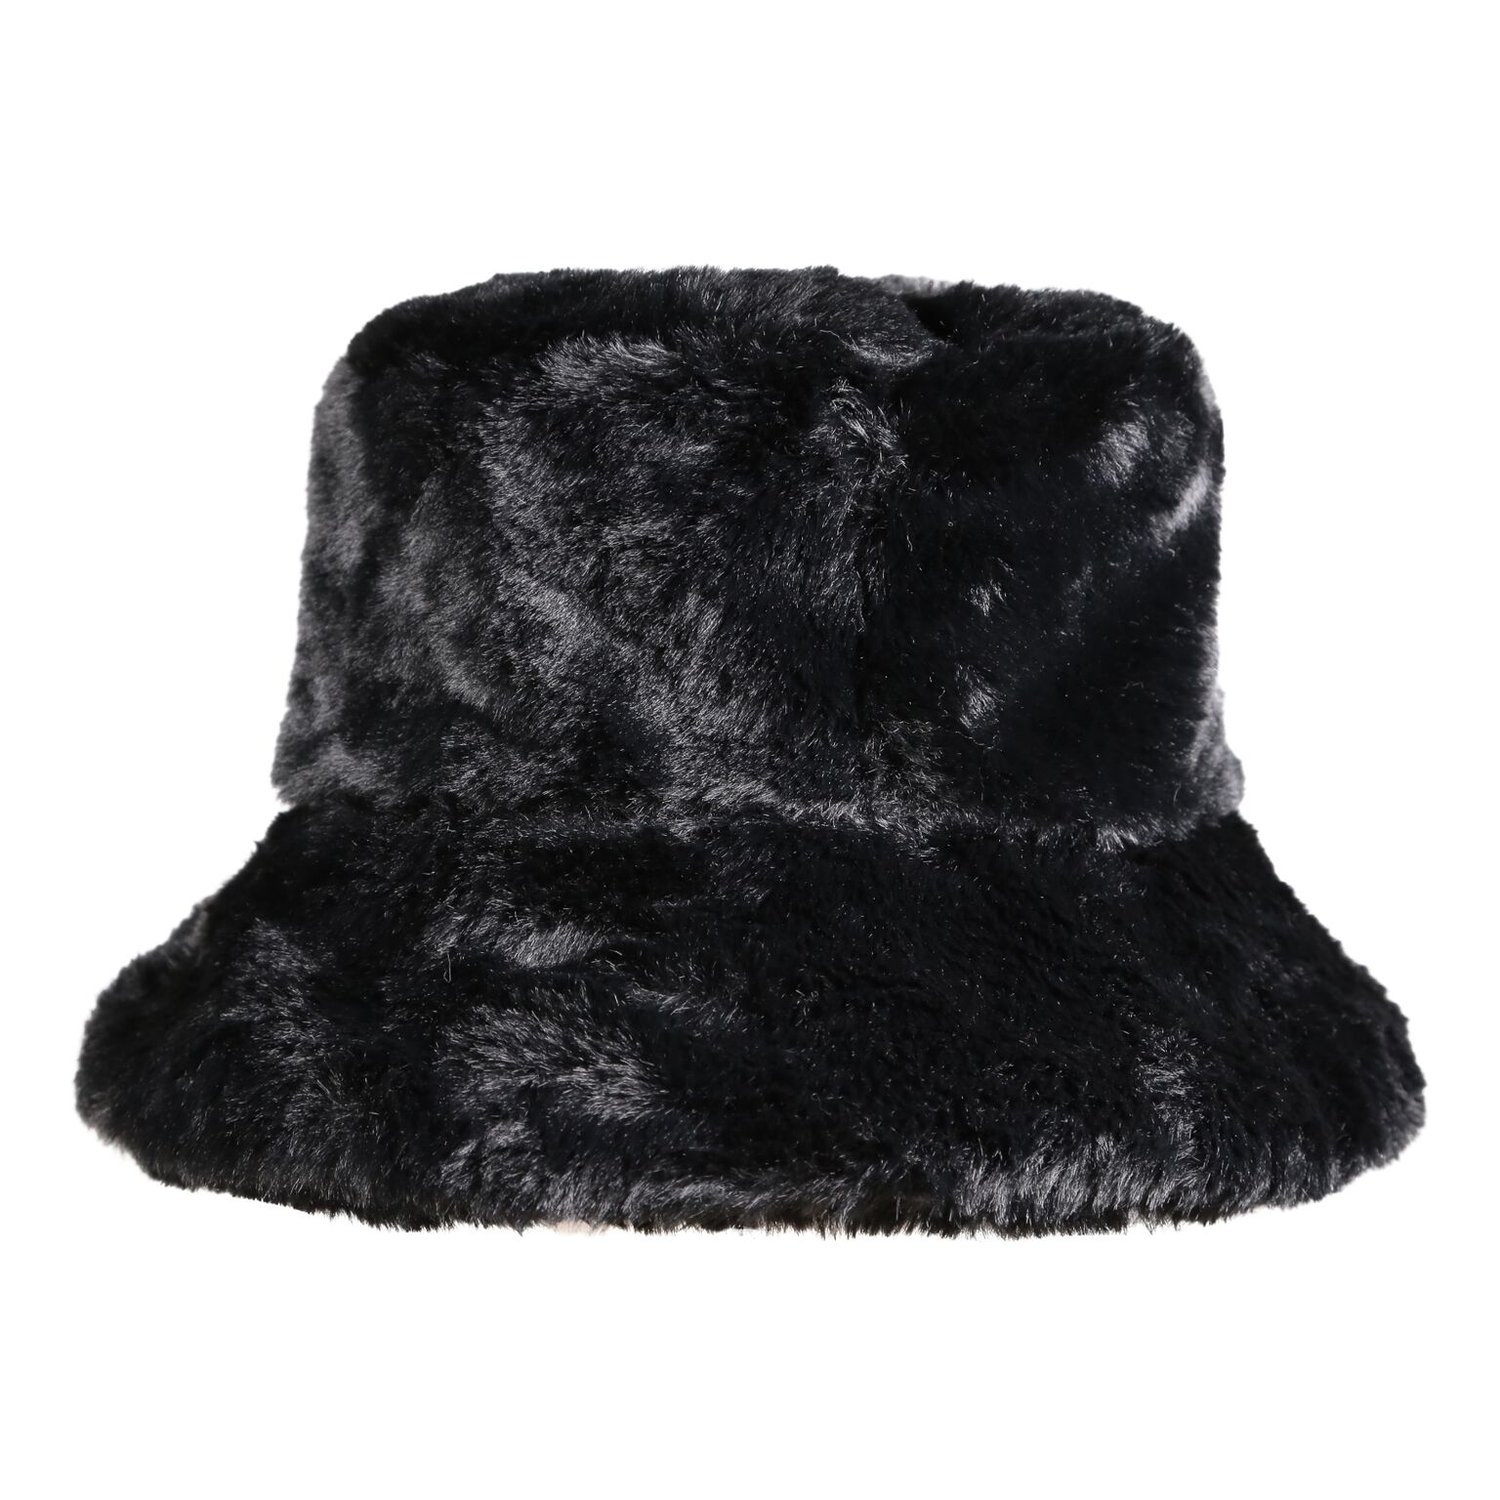 b2117865d447a Faux Fur Bucket Hat in Black — My Accessories London